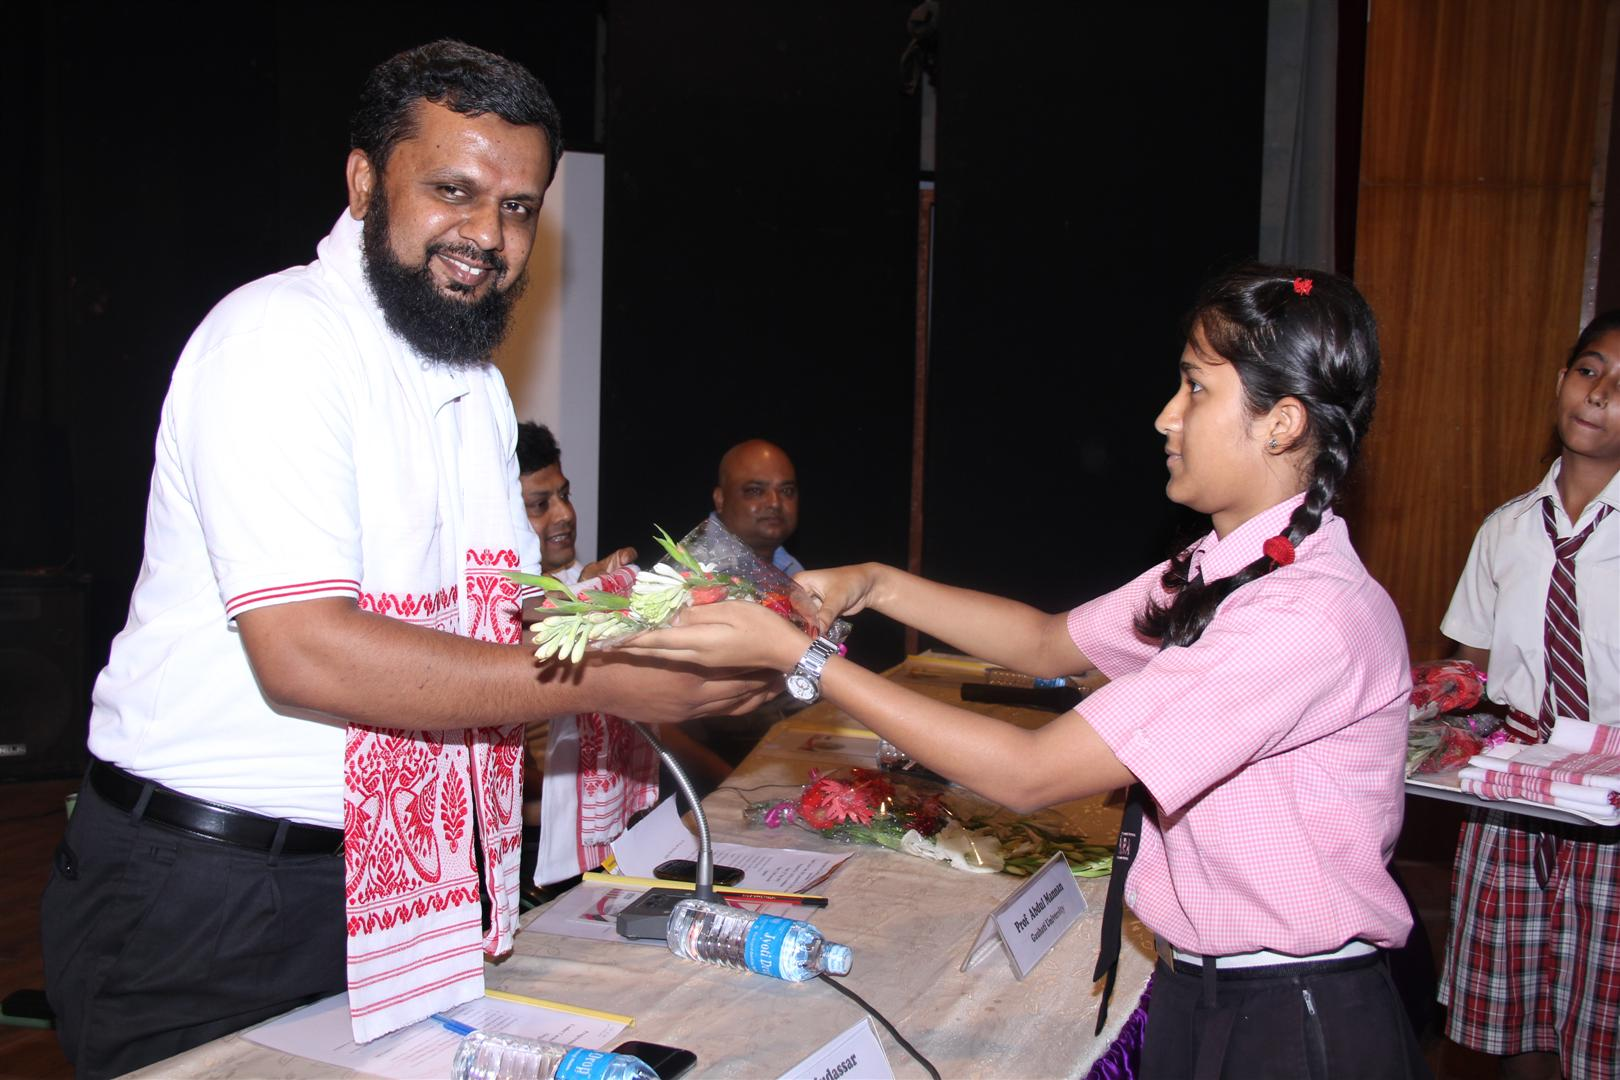 Ameen-e-Mudassar, CEO of Cigma India and an internationally reputed career guidance expert, being welcomed with flowers at the Career Yatra 2015 programme in Guwahati on Tuesday.